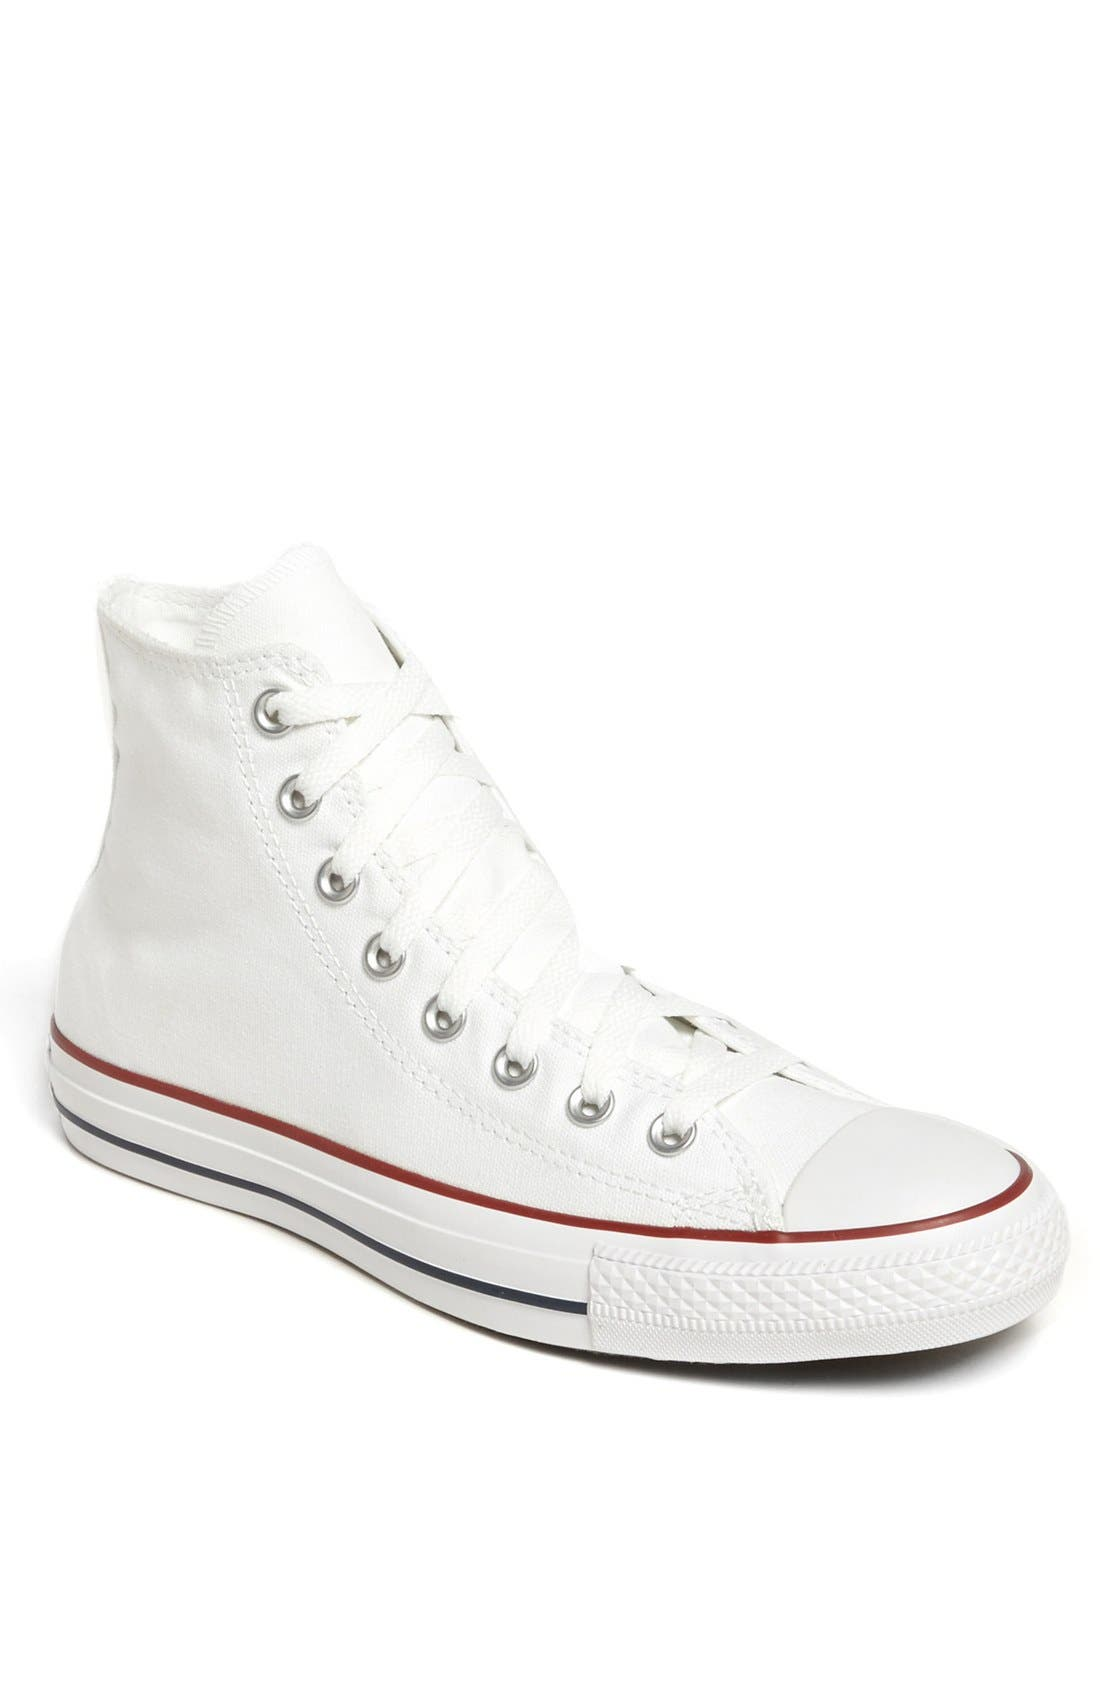 CONVERSE, Chuck Taylor<sup>®</sup> High Top Sneaker, Main thumbnail 1, color, OPTIC WHITE